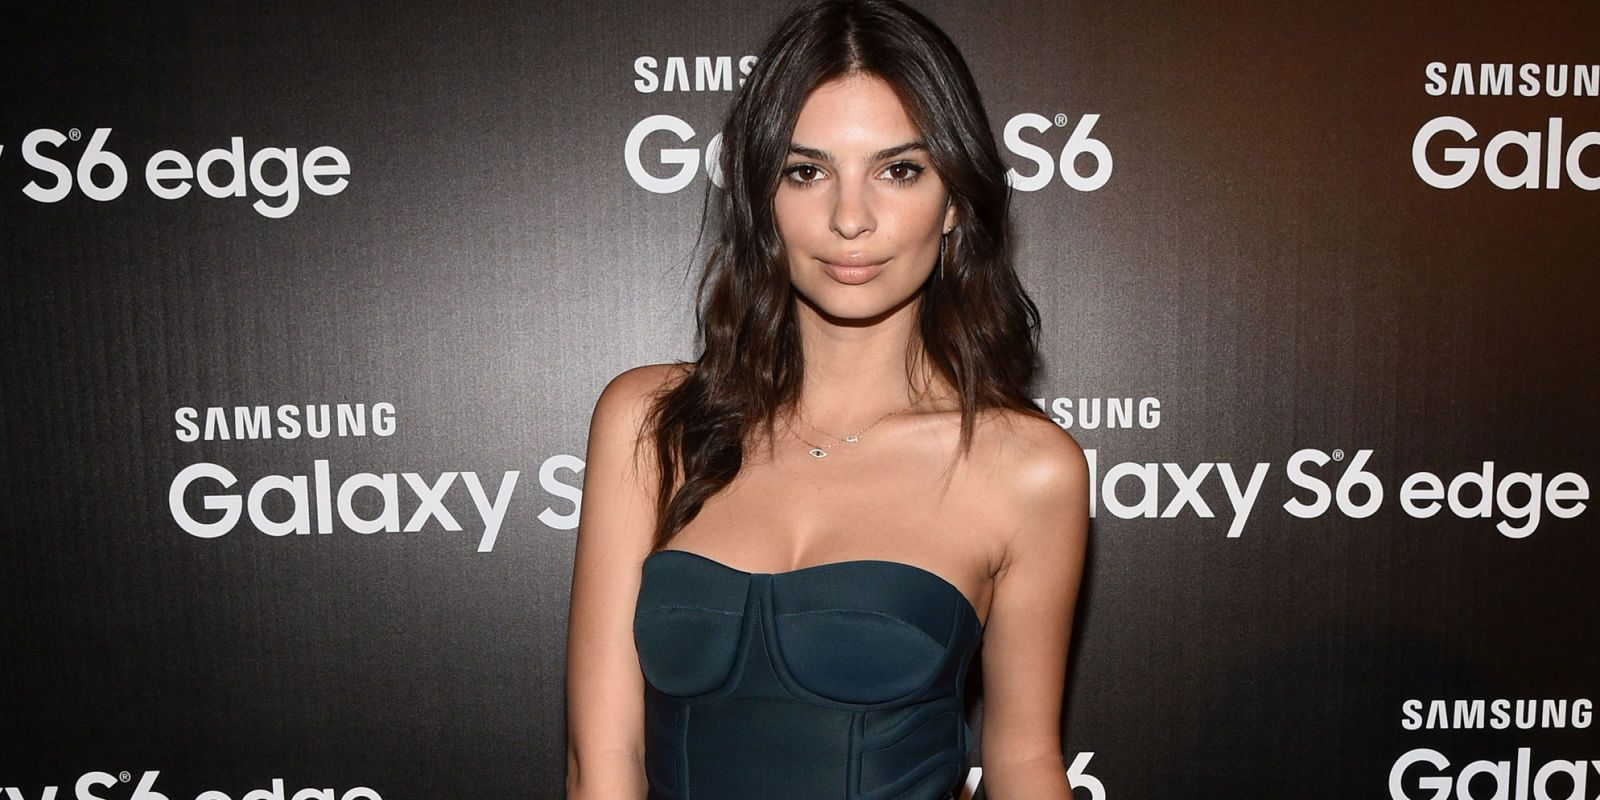 Emily Ratajkowski On Why Women Shouldn't Feel Guilty About Being Sexy